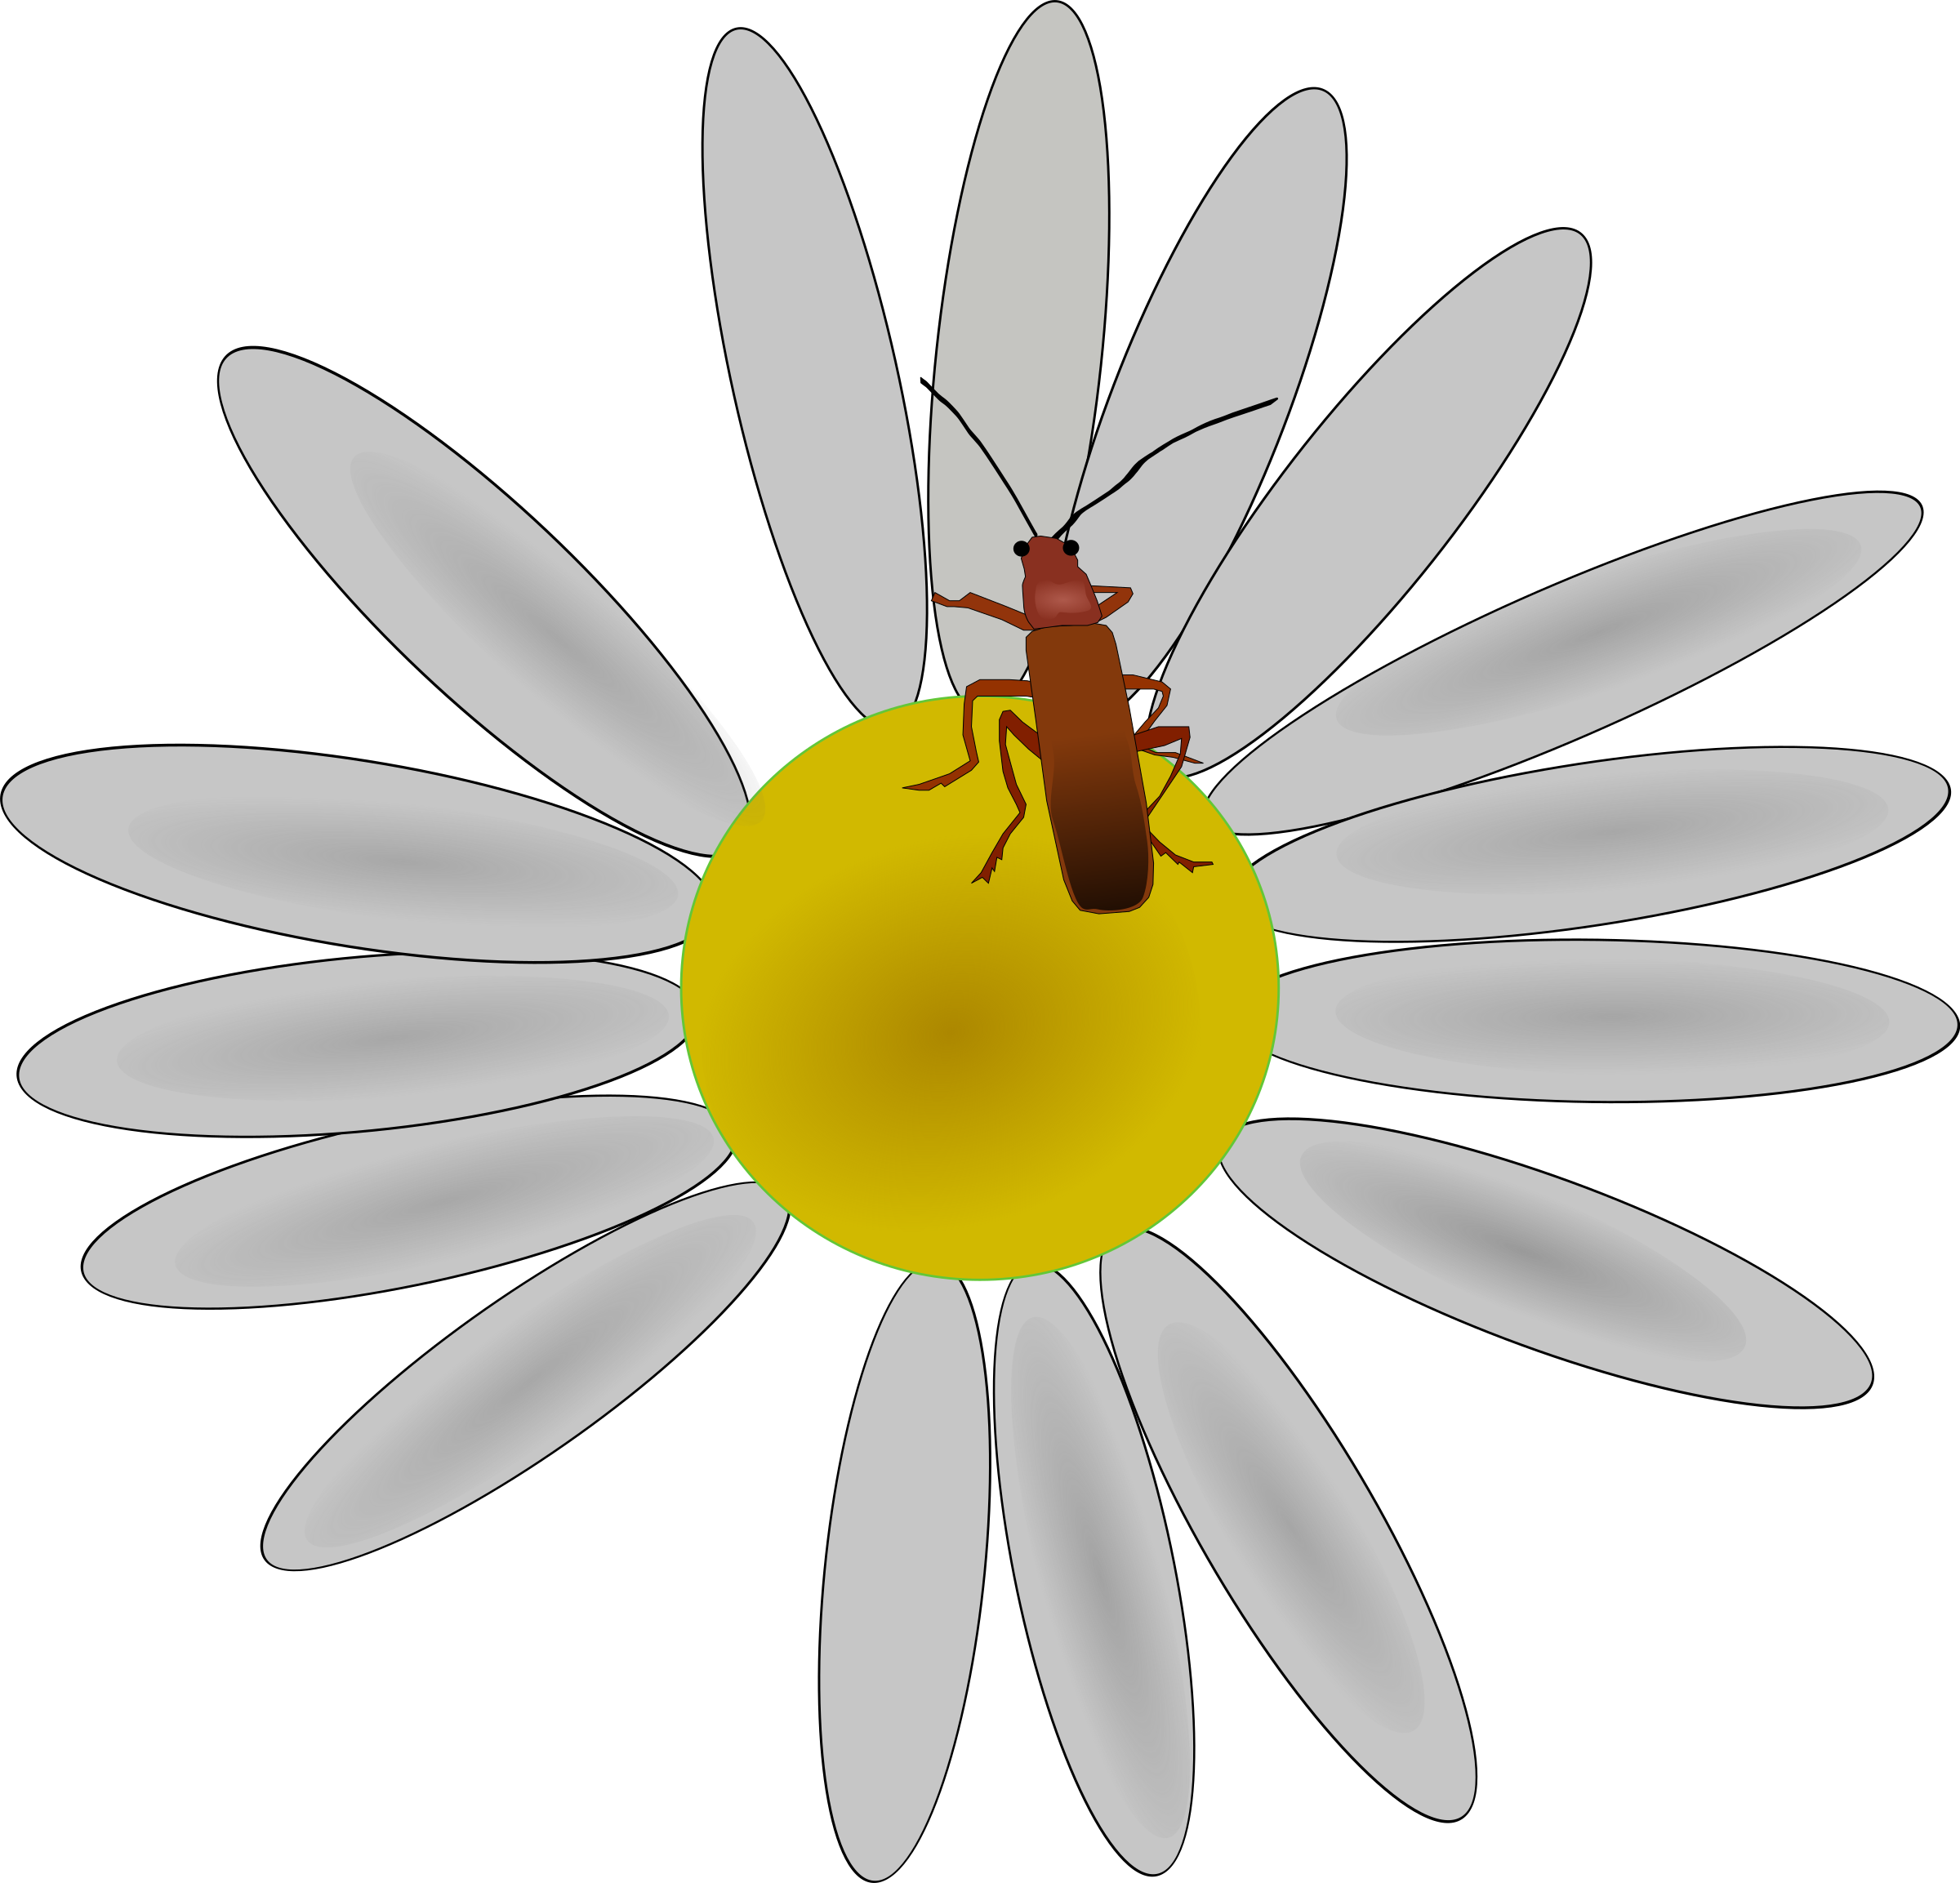 bug on a flower by Machovka